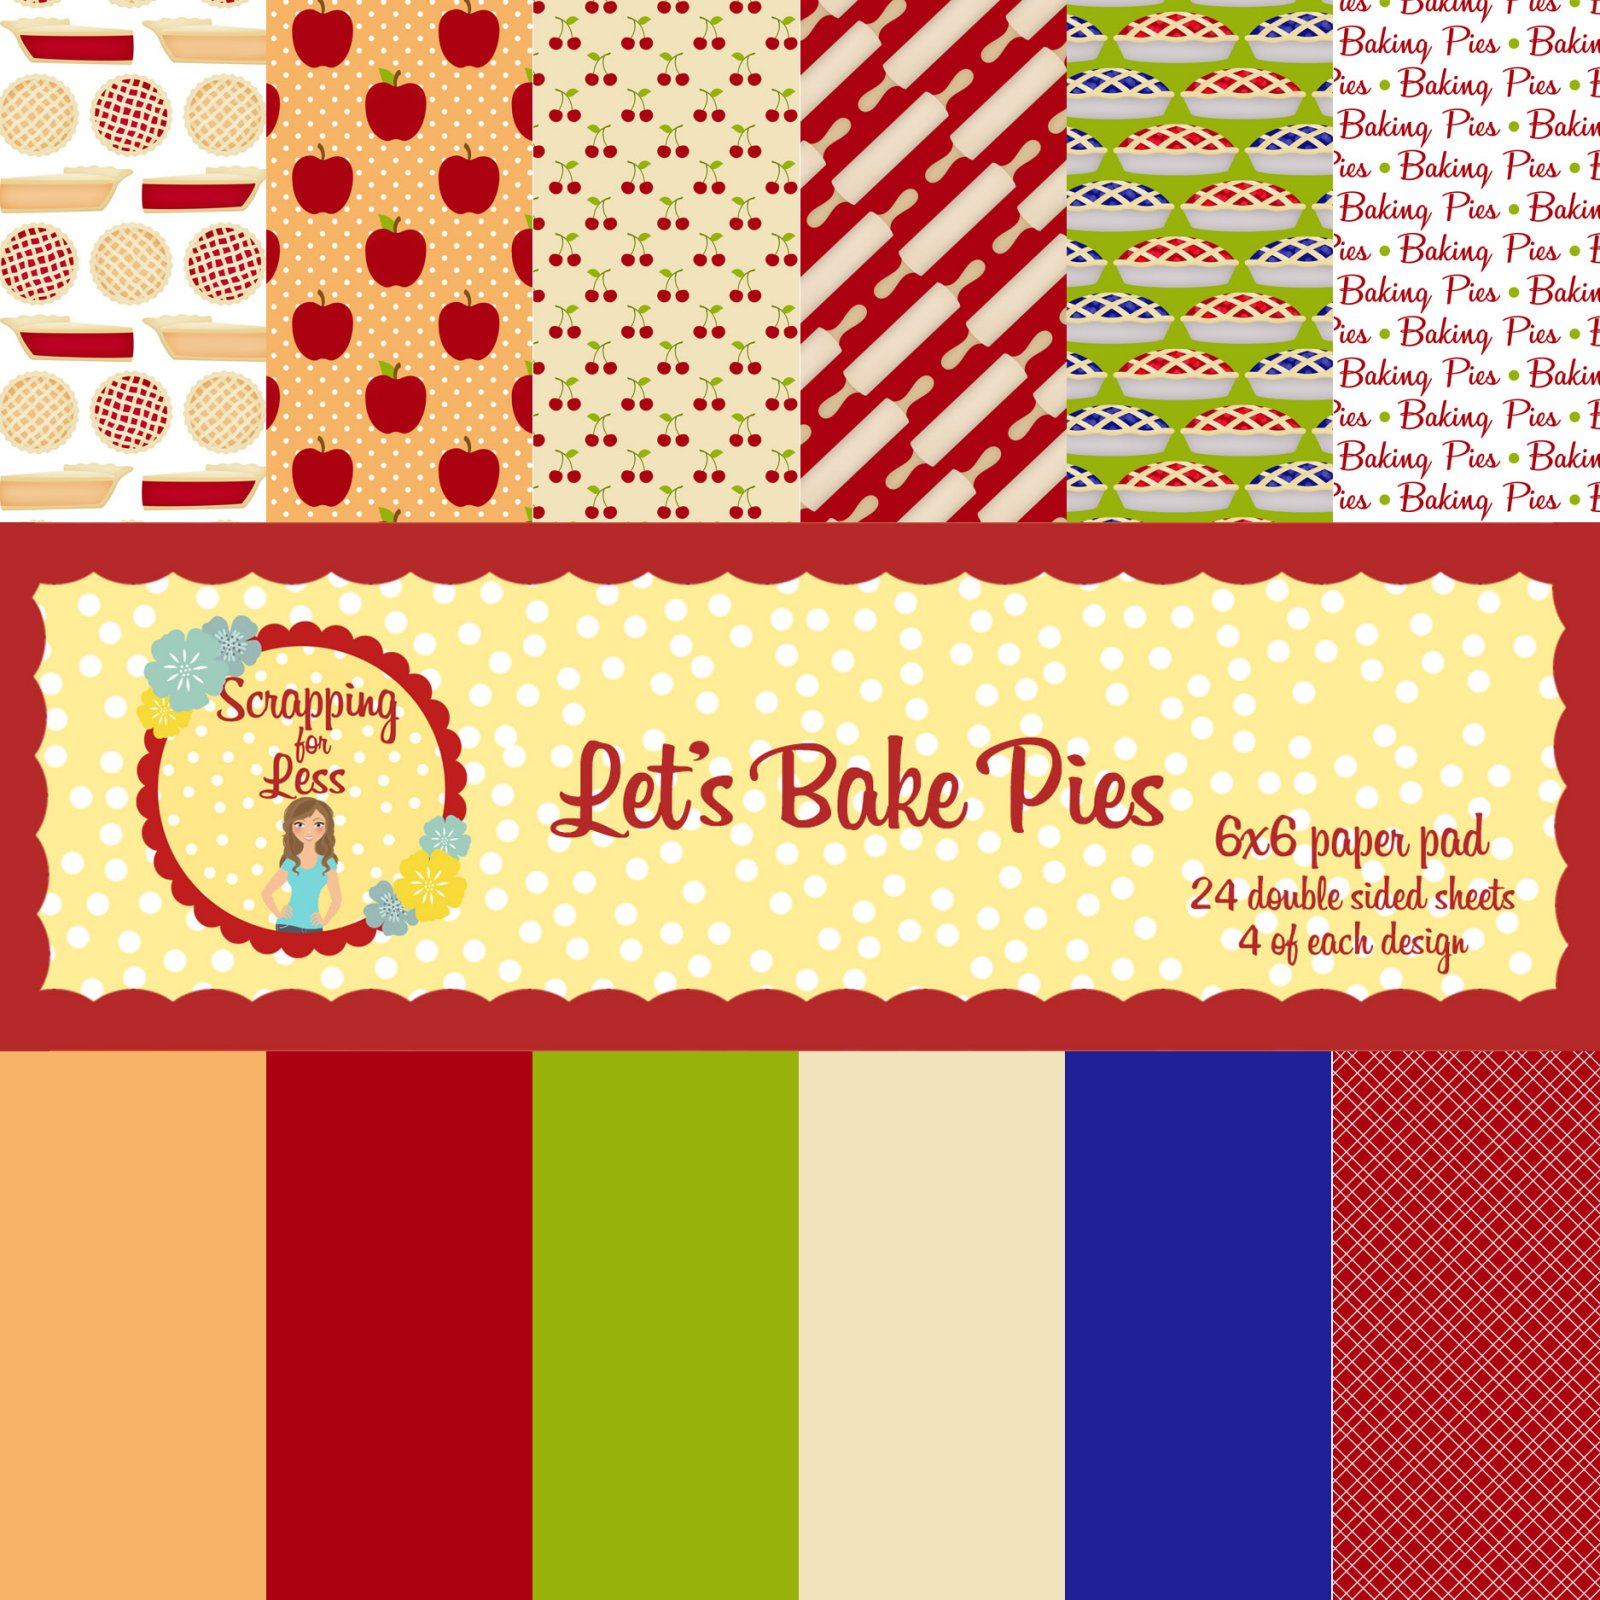 Scrapping for Less Let's Bake a Pie 6x6 Paper Pad